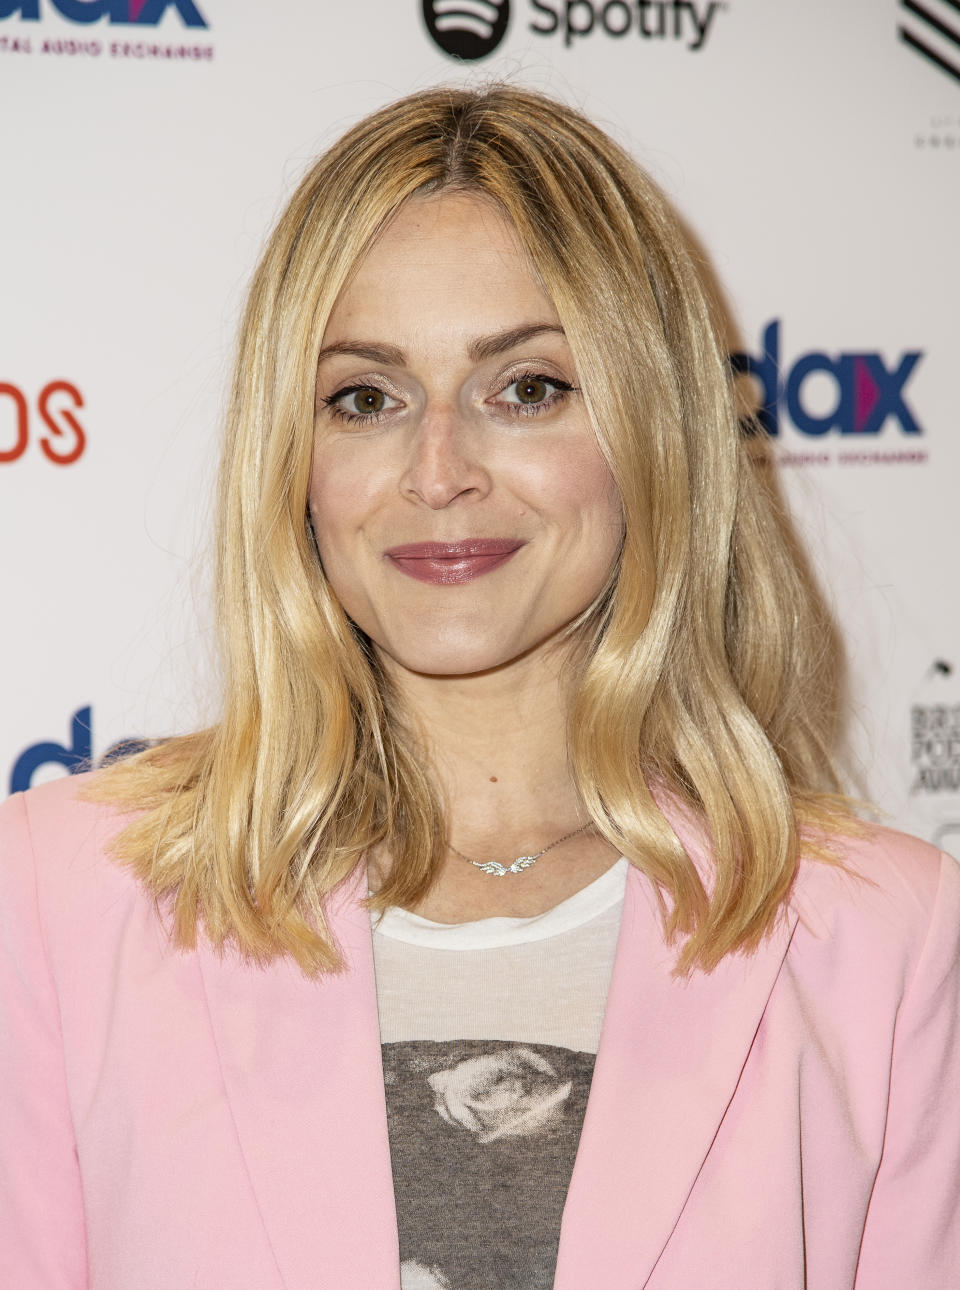 LONDON, UNITED KINGDOM - 2019/05/18: Fearne Cotton seen during the British Podcast Awards 2019 at the Kings Place in London. (Photo by Gary Mitchell/SOPA Images/LightRocket via Getty Images)